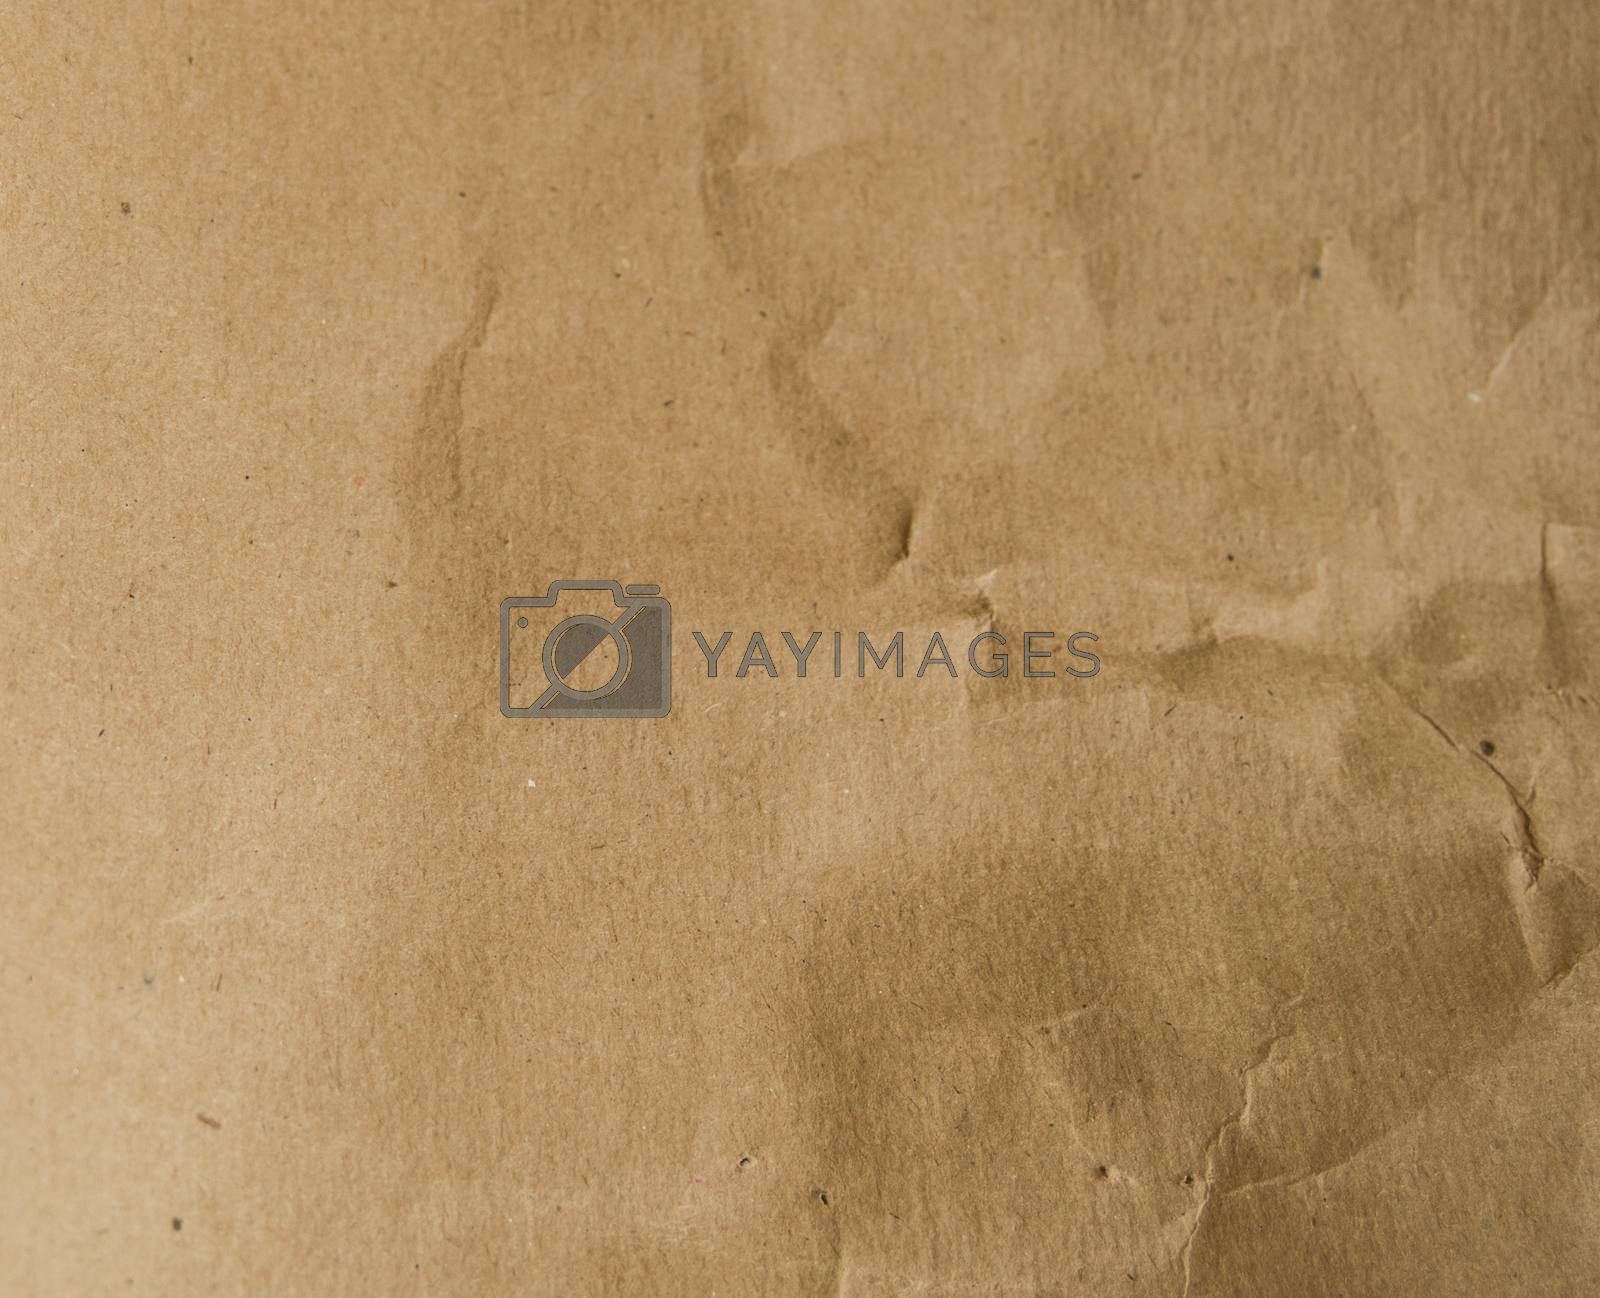 Abstract texture of brown packaging paper, background.